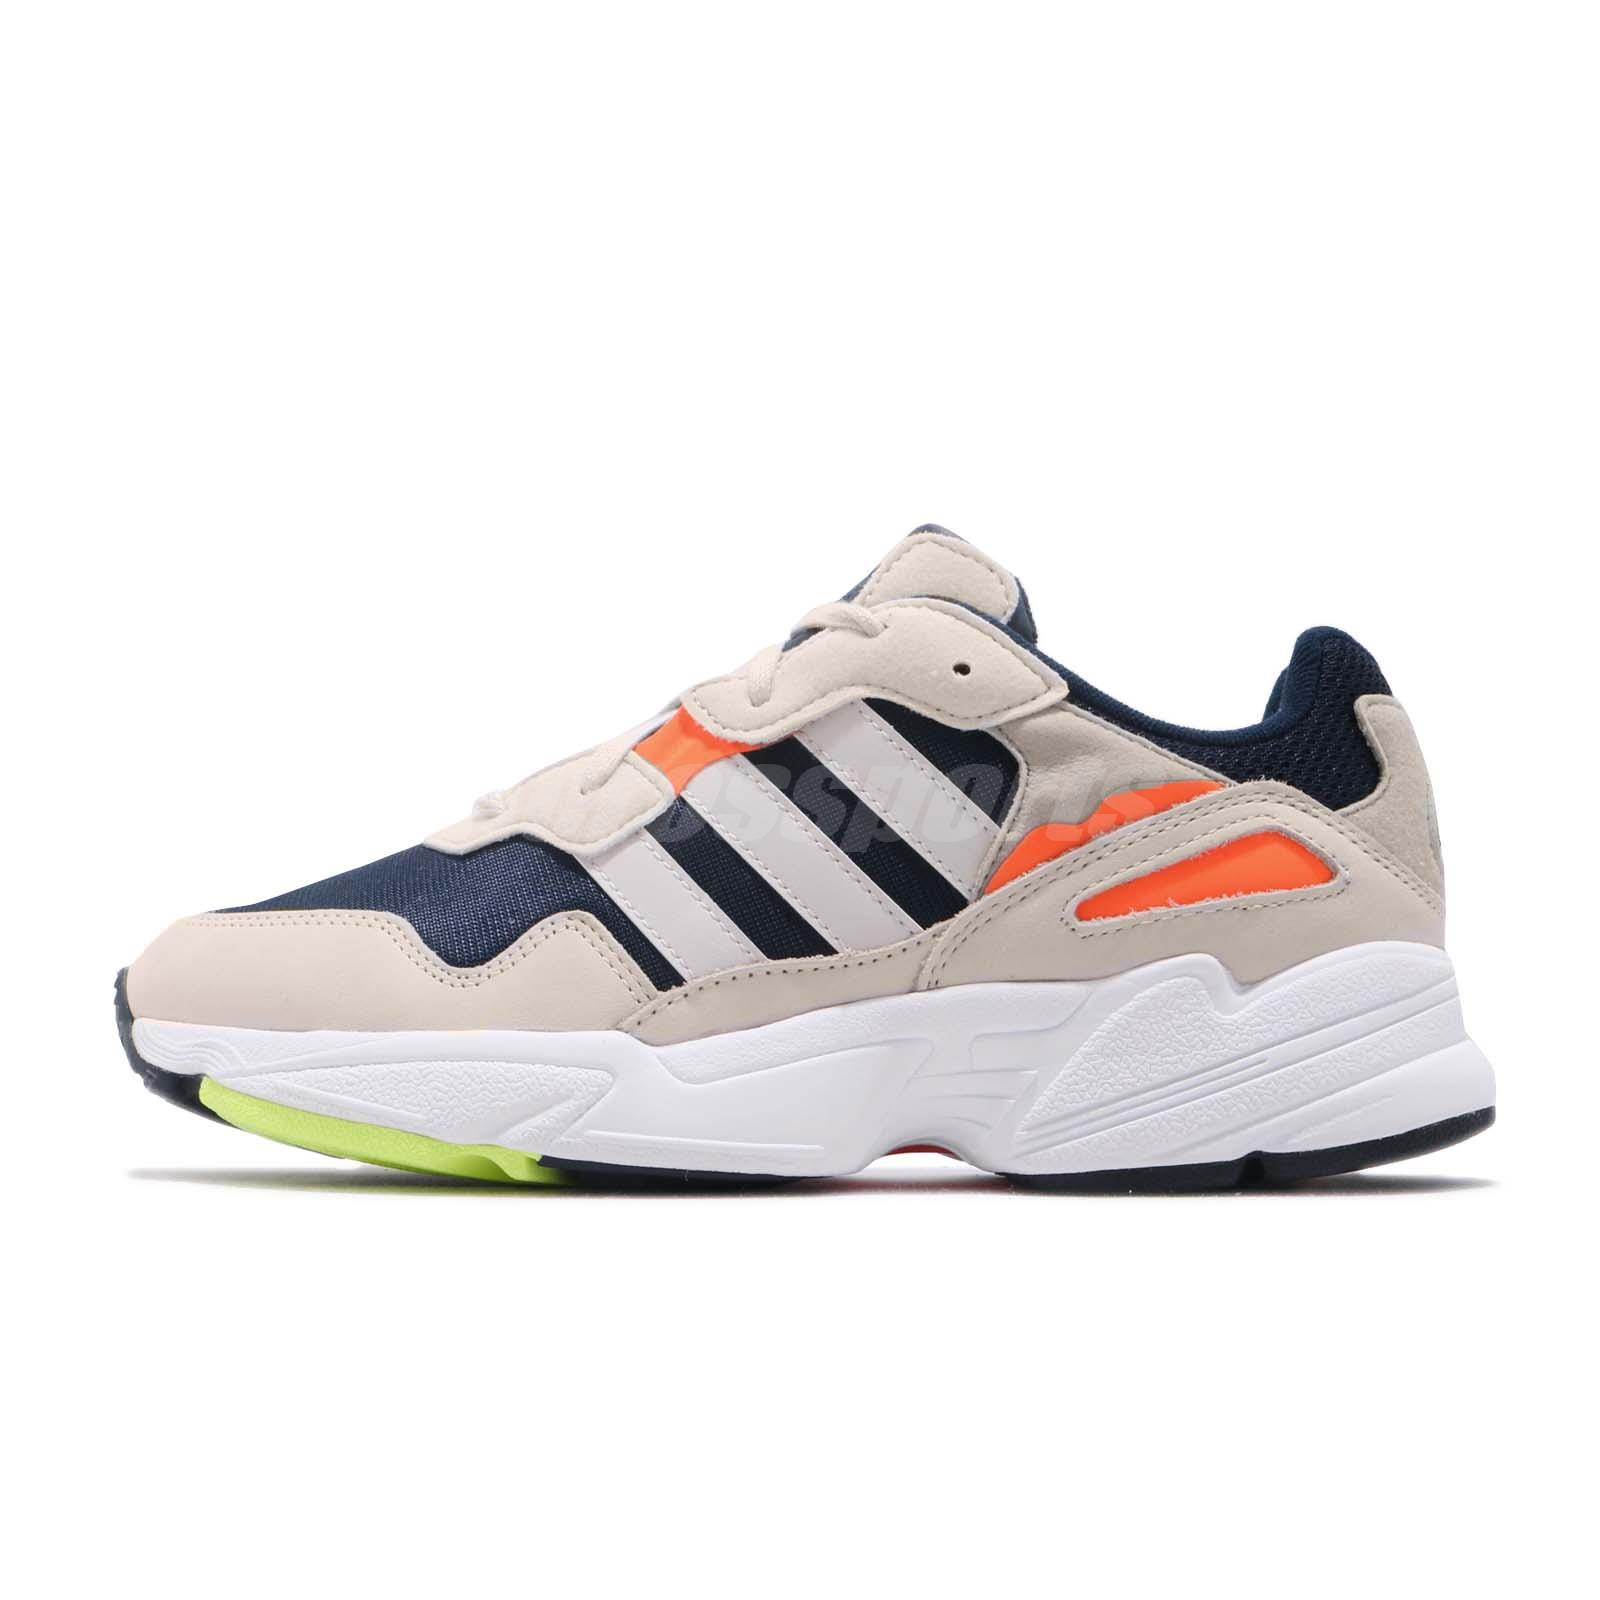 7a5dd1c7b161 adidas Originals Yung-96 Ivory Navy Orange Mens Lifestyle Shoes Snakers  F35017